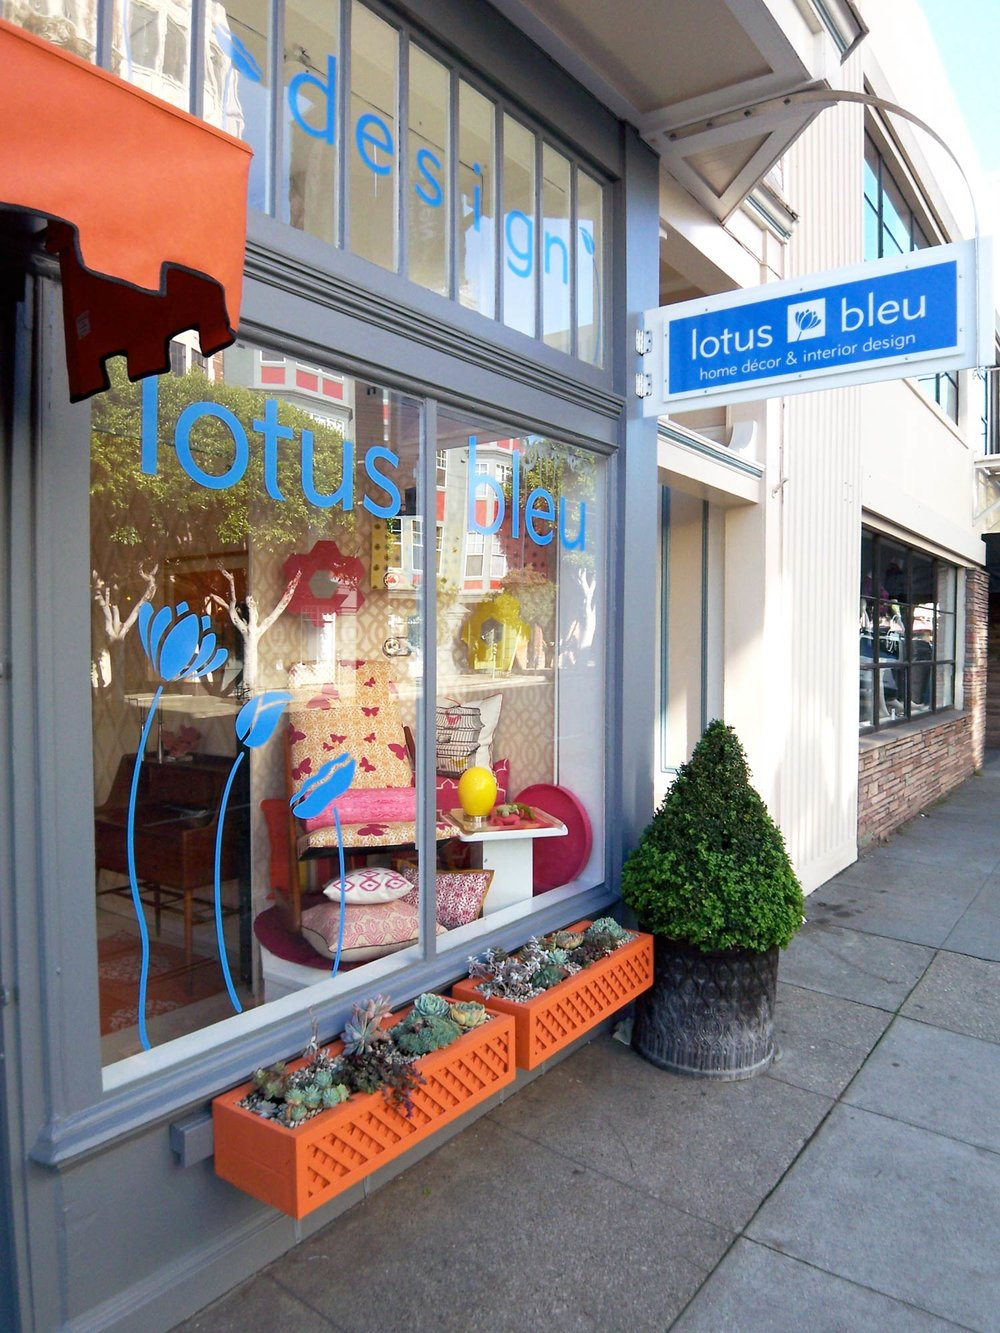 Hayes Valley Boutique and Design Studio by Lotus Bleu Design